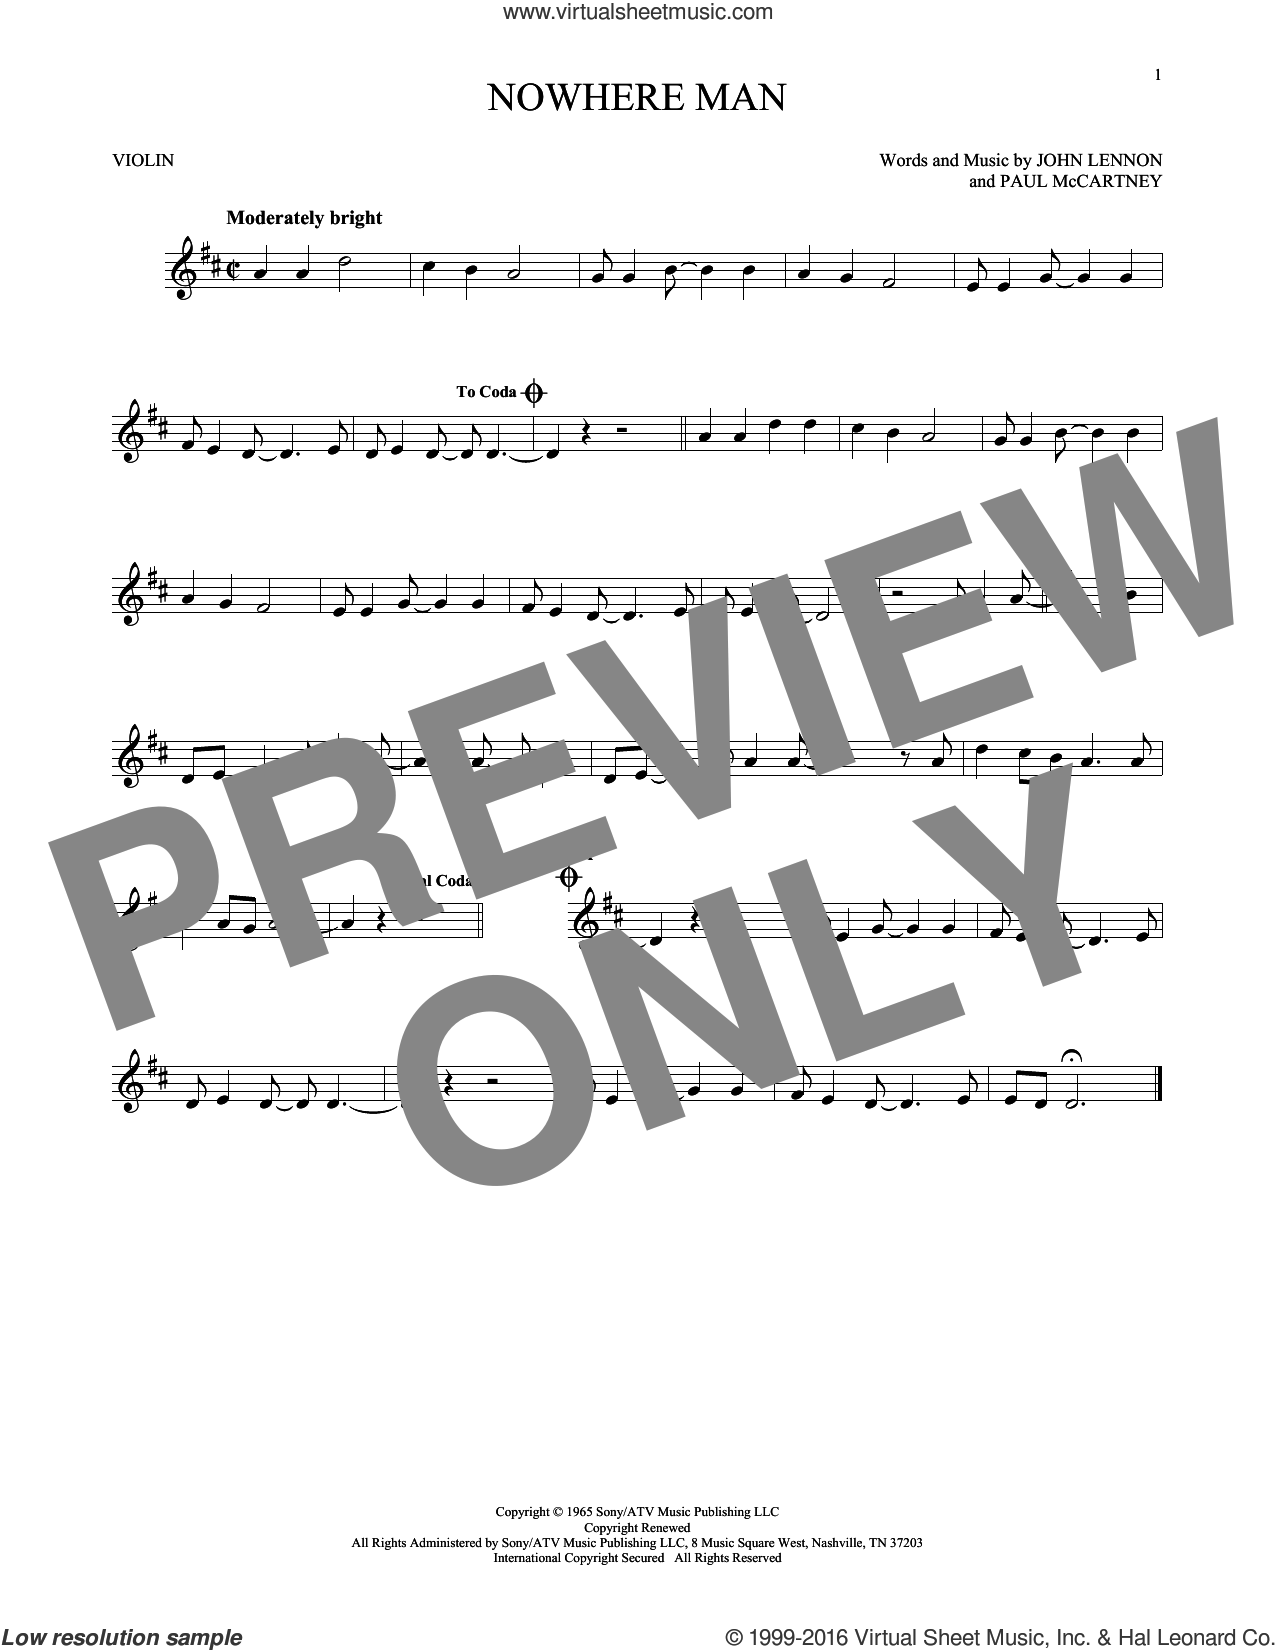 Nowhere Man sheet music for violin solo by The Beatles, John Lennon and Paul McCartney, intermediate skill level